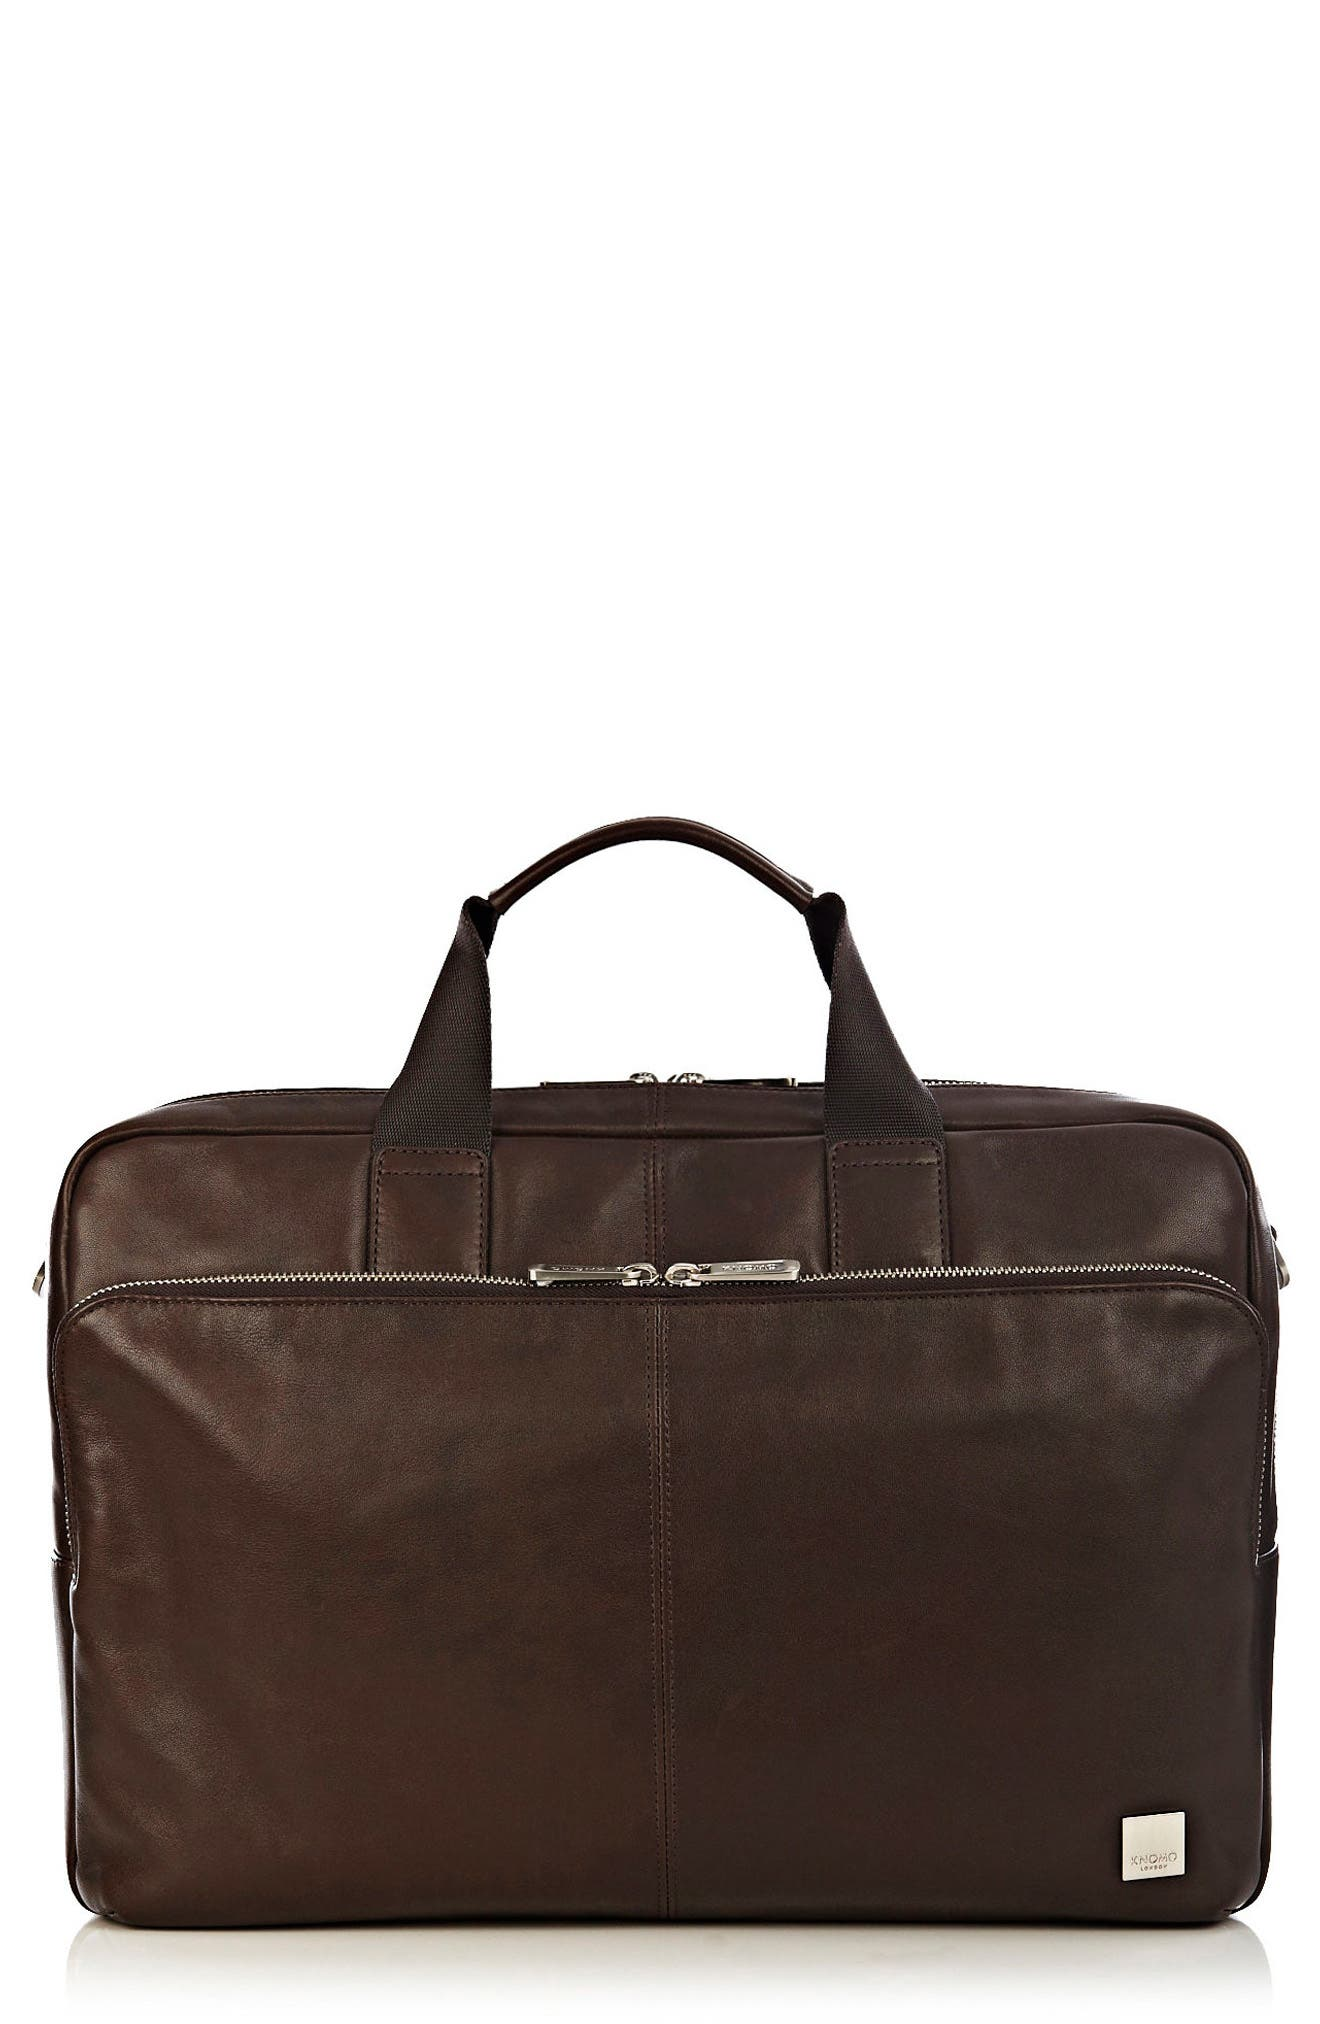 Brompton Amesbury Leather Briefcase,                         Main,                         color, Brown